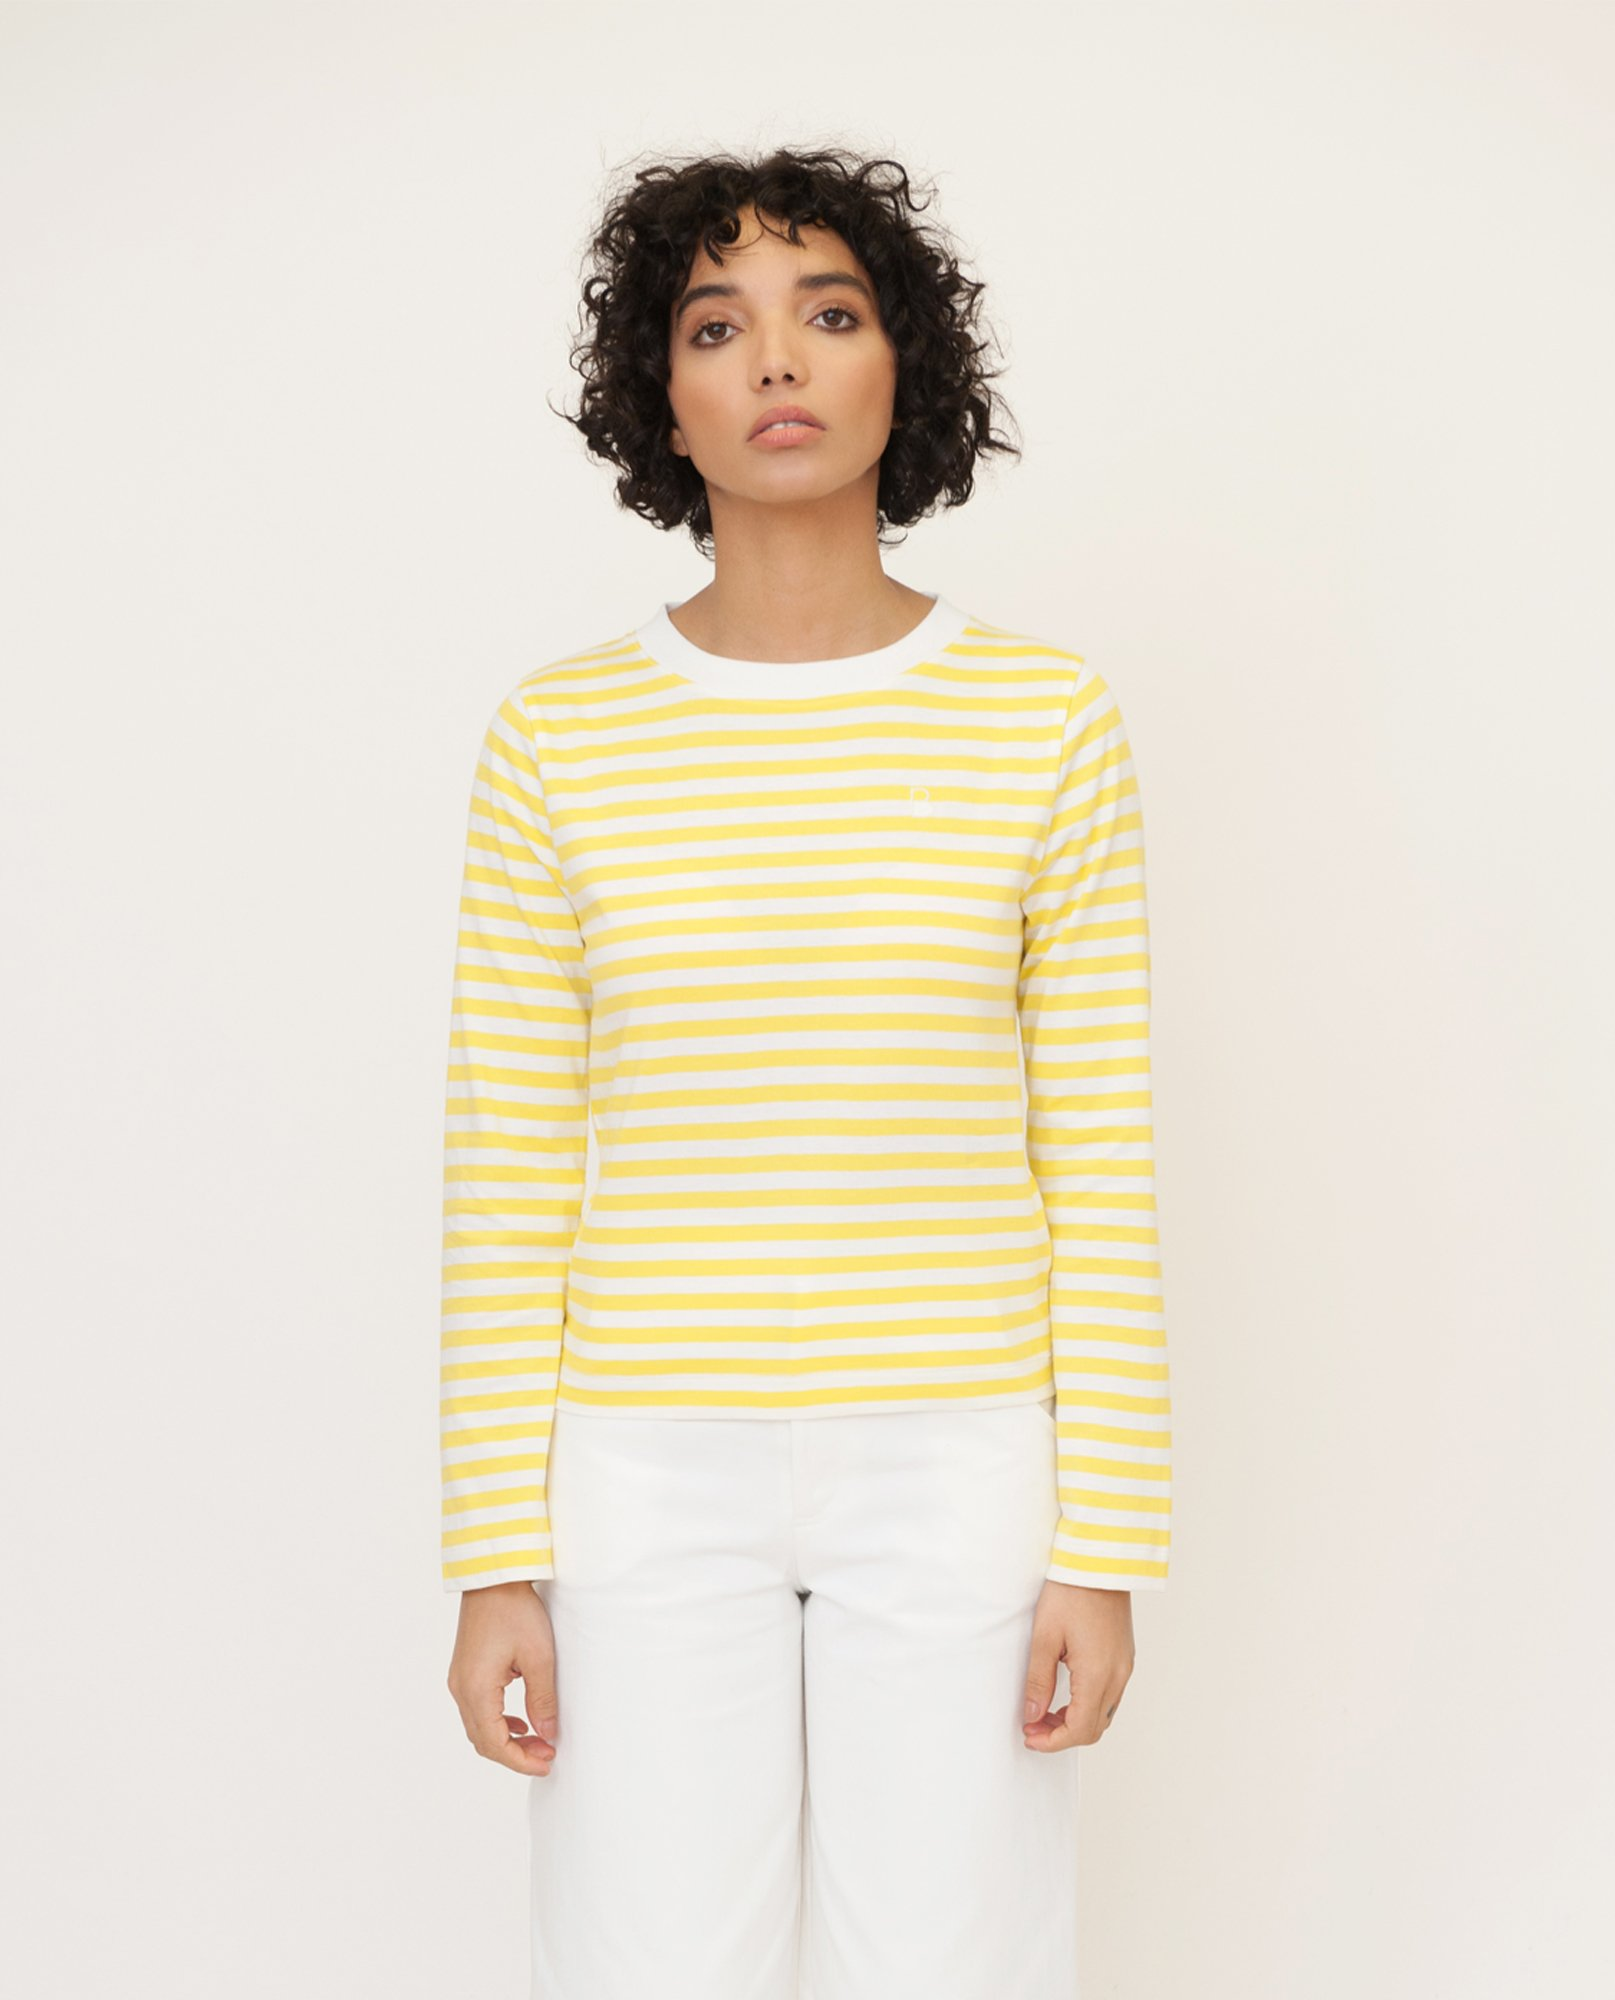 SHOBA Organic Cotton Top In Yellow And White from Beaumont Organic